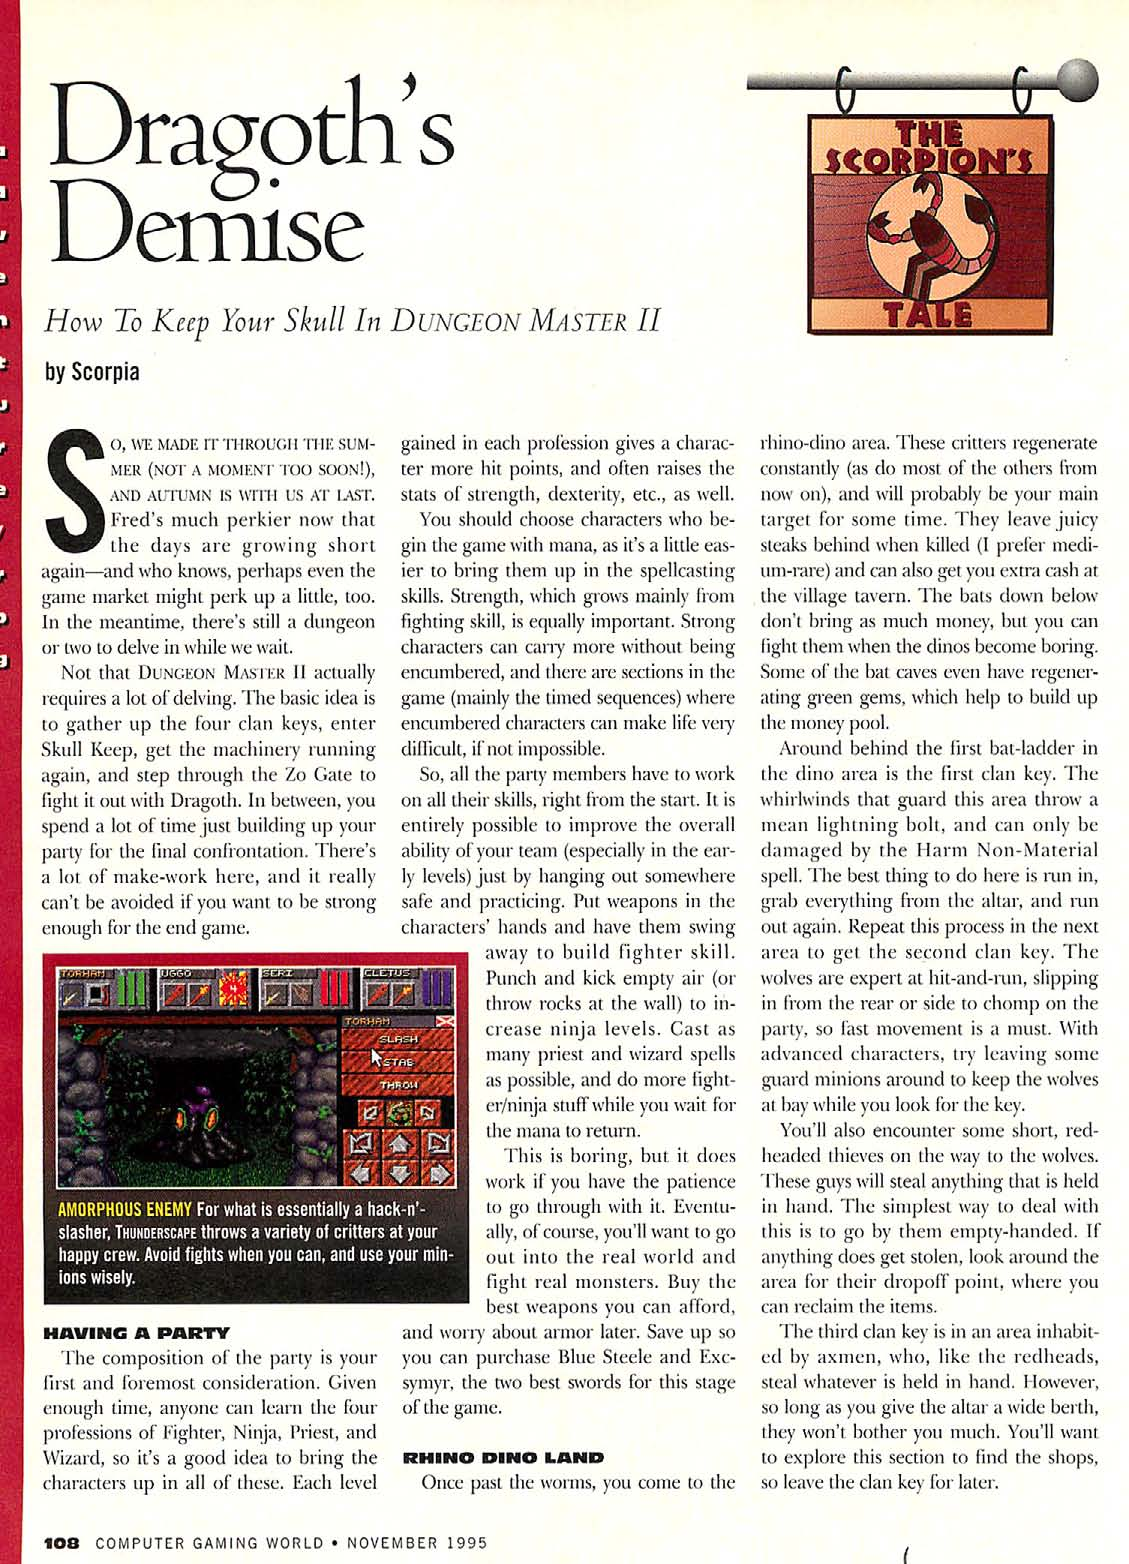 Dungeon Master II Guide published in American magazine 'Computer Gaming World', Issue #136 November 1995, Page 108